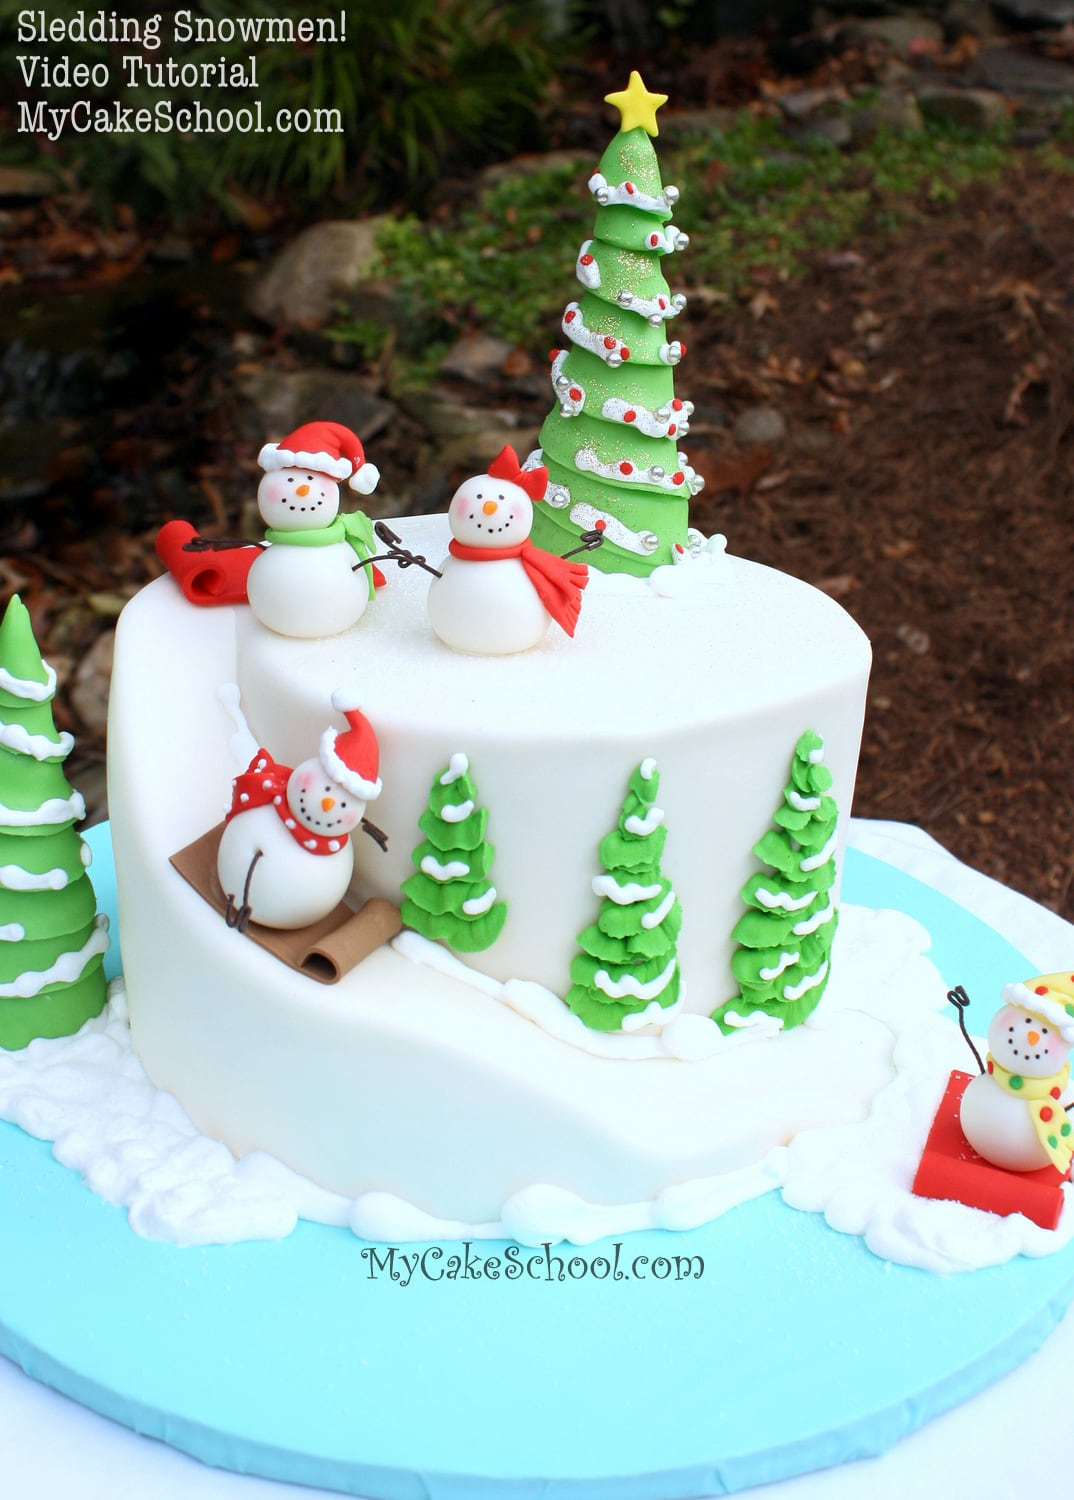 Best Sledding Snowman A Carved Cake Video Tutorial My Cake This Month